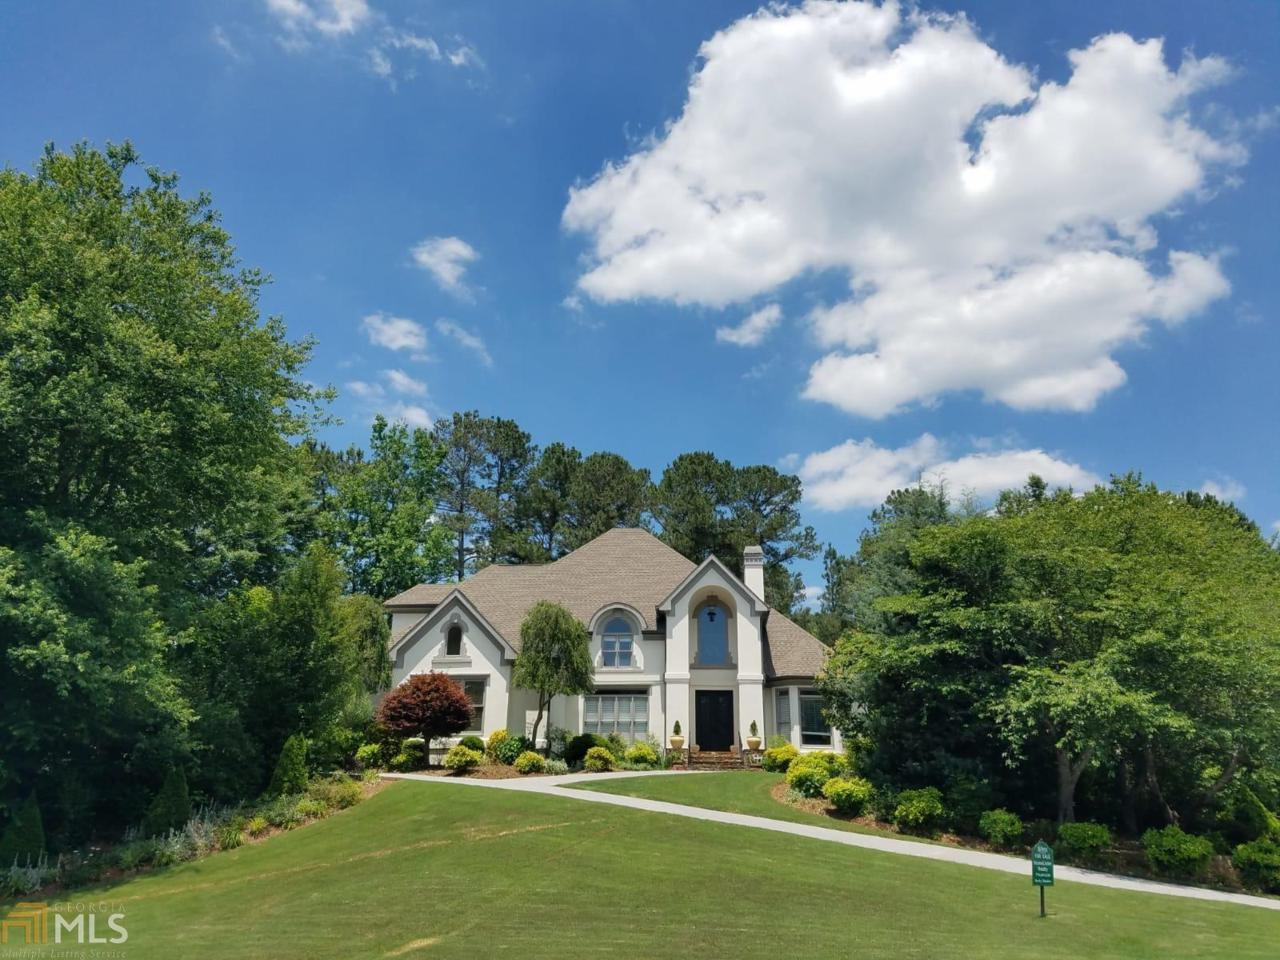 3146 St Ives Country Club Pkwy - Photo 1